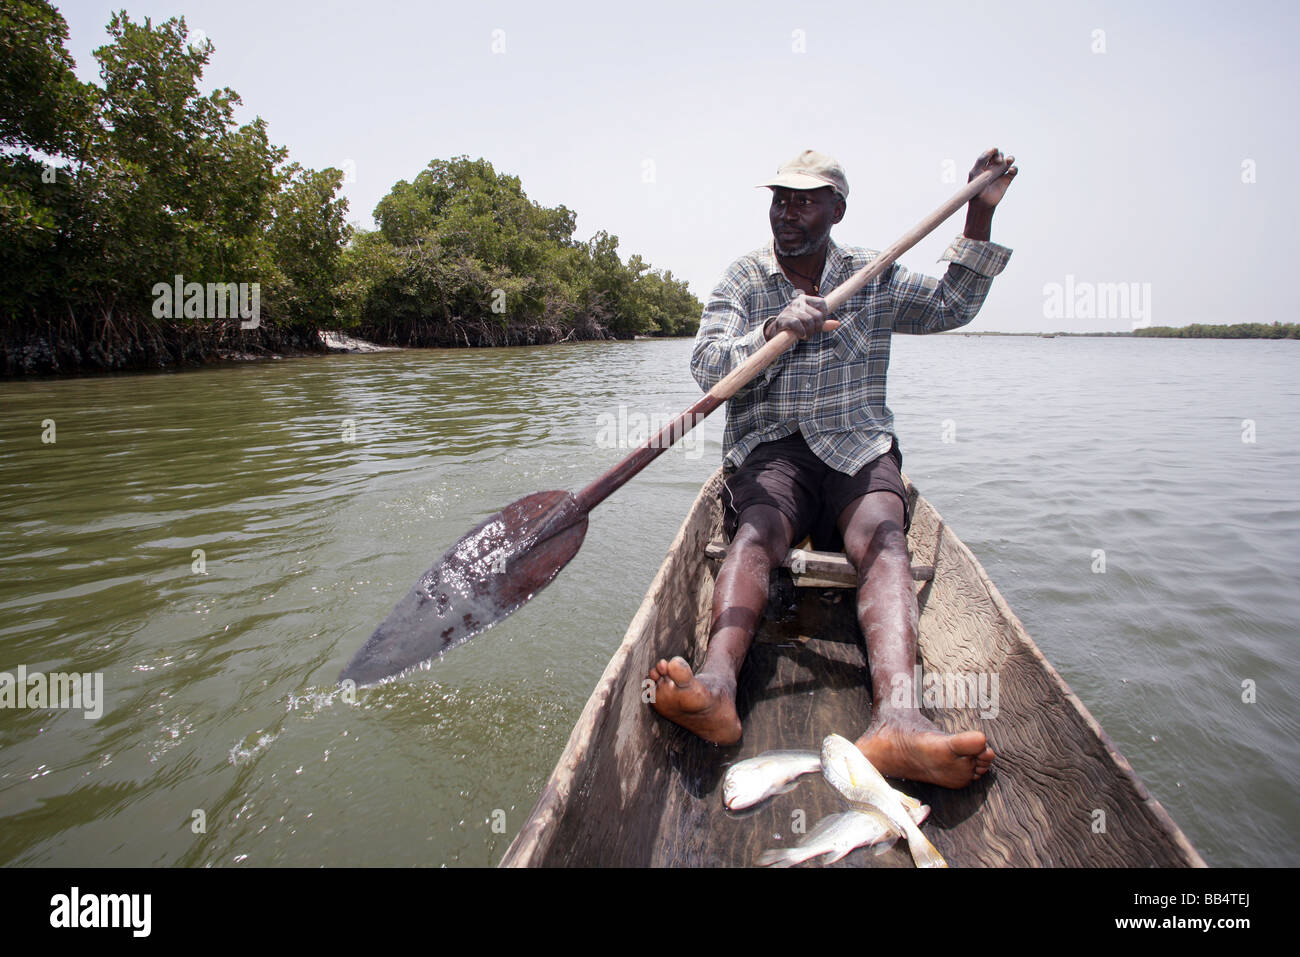 Senegal: Fisherman in his dugout canoe on the river Casamance - Stock Image